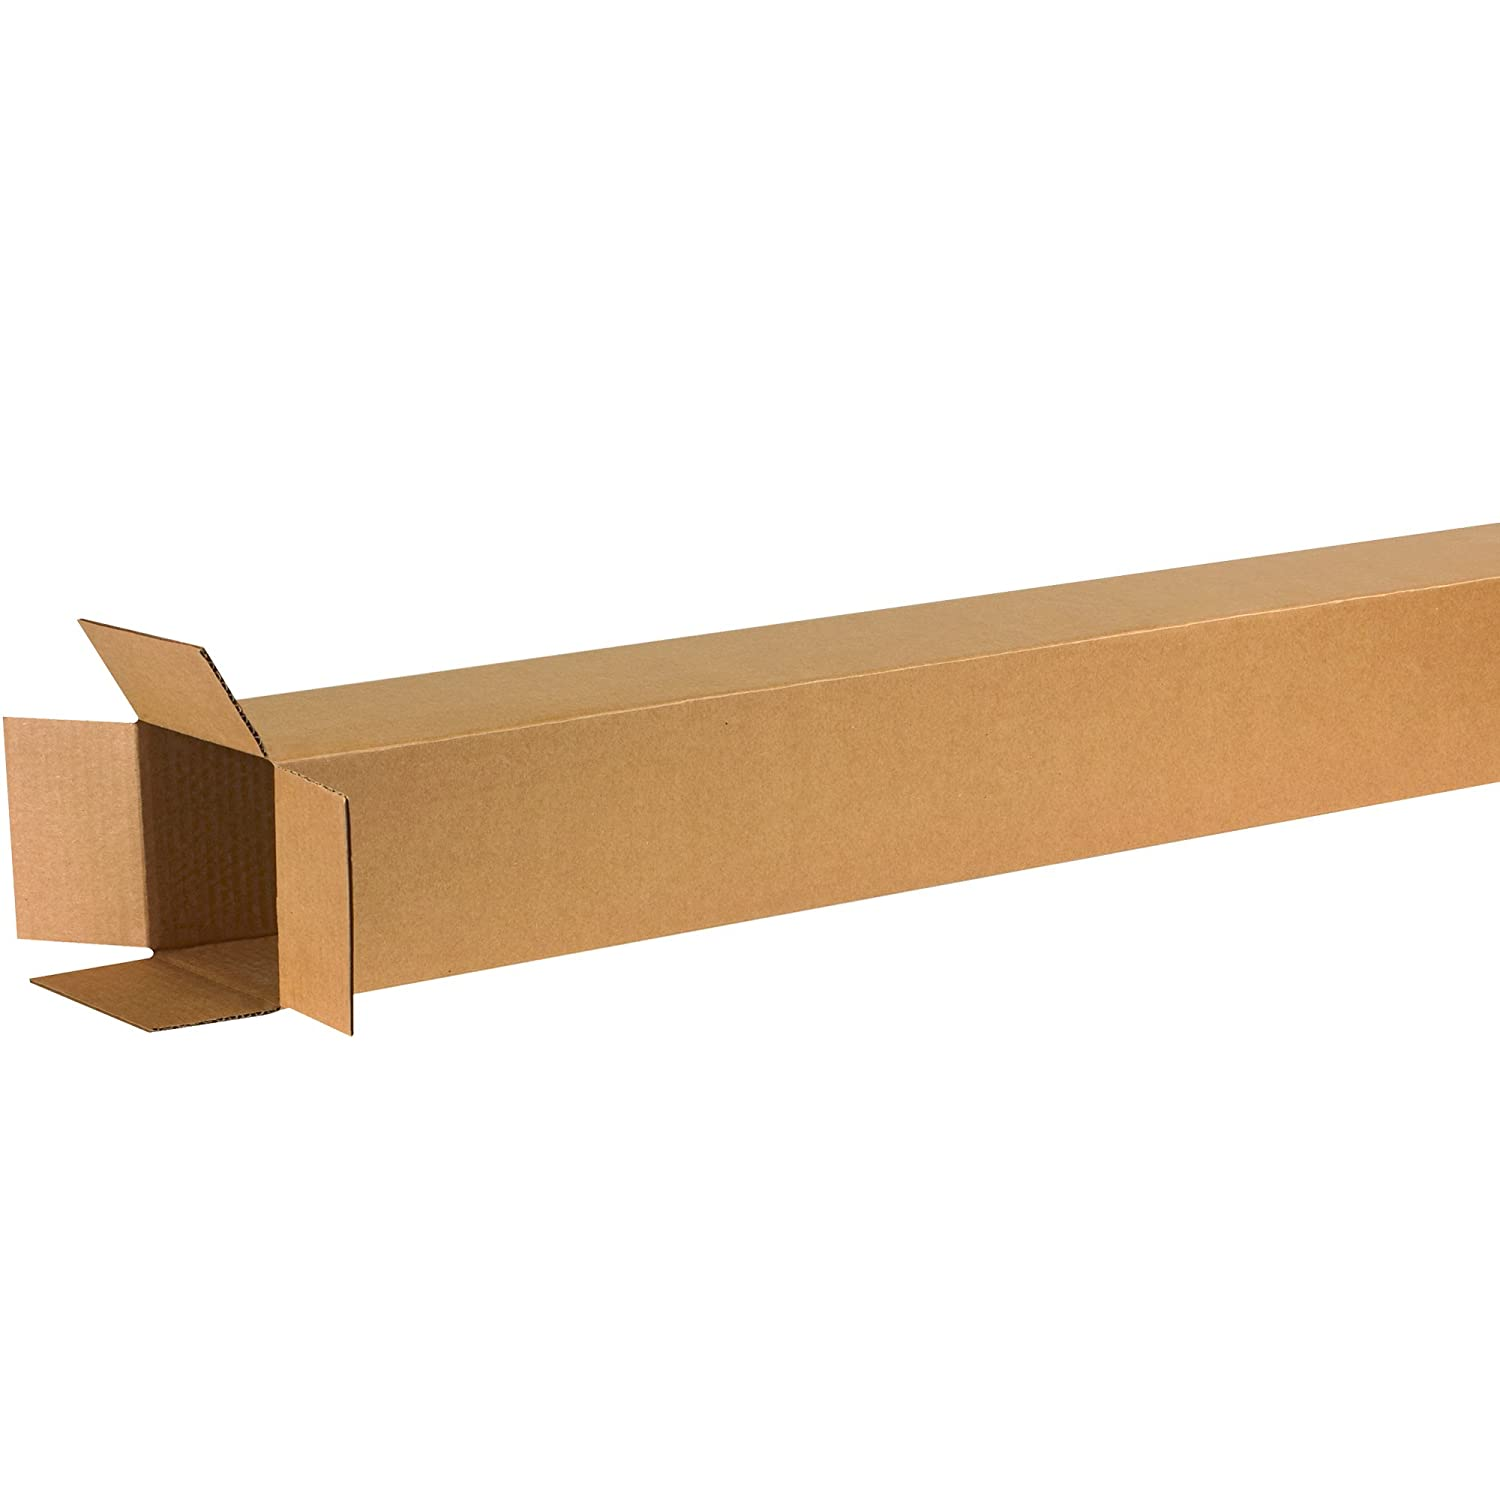 Sale Special Price Boxes Fast BF6672 Tall Cardboard 72